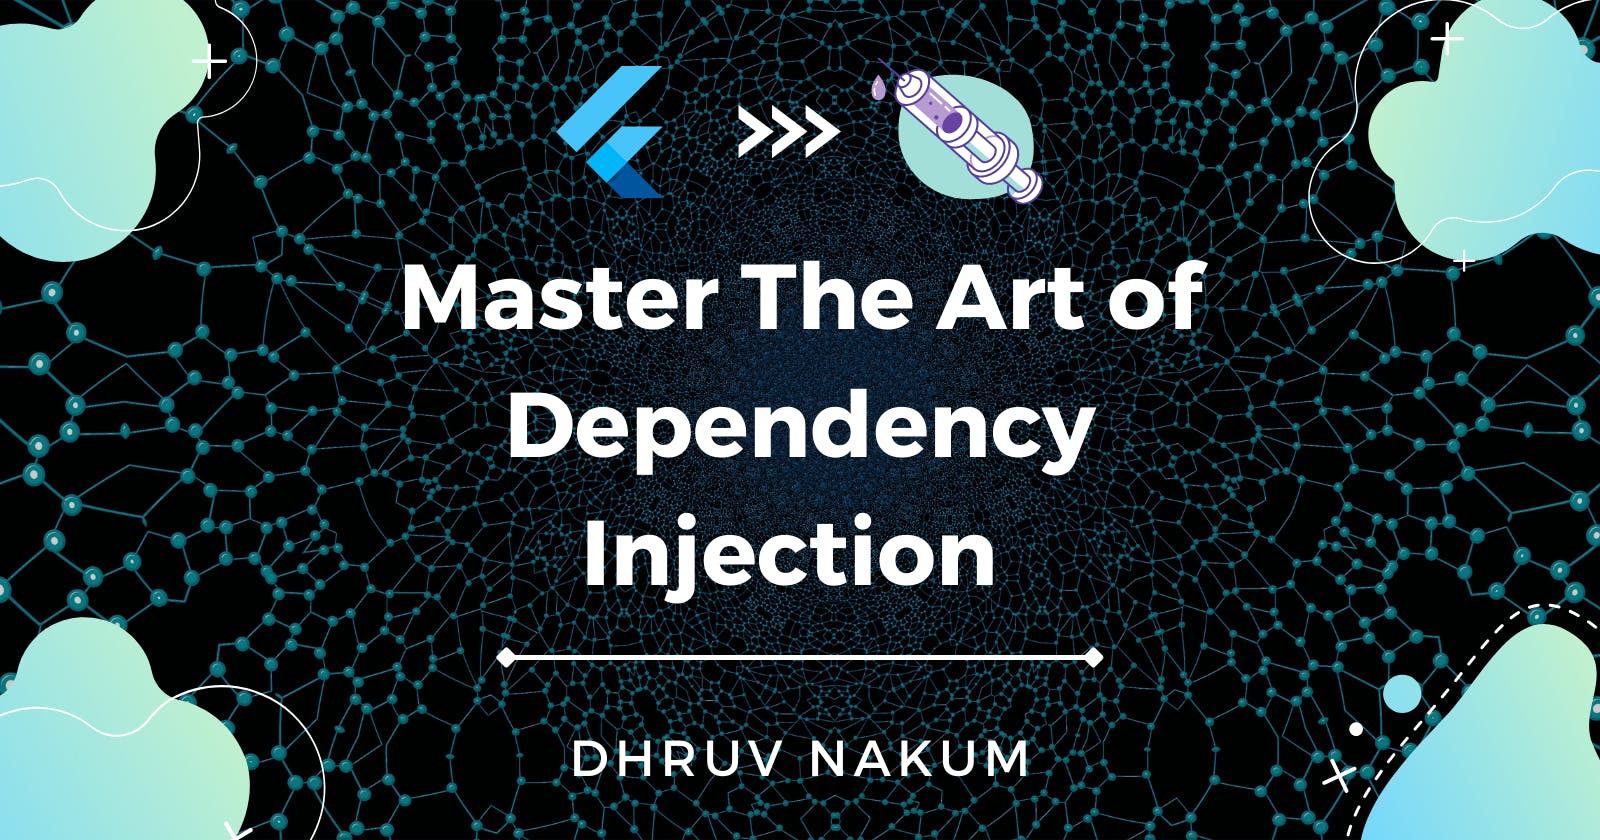 Master The Art of Dependency Injection